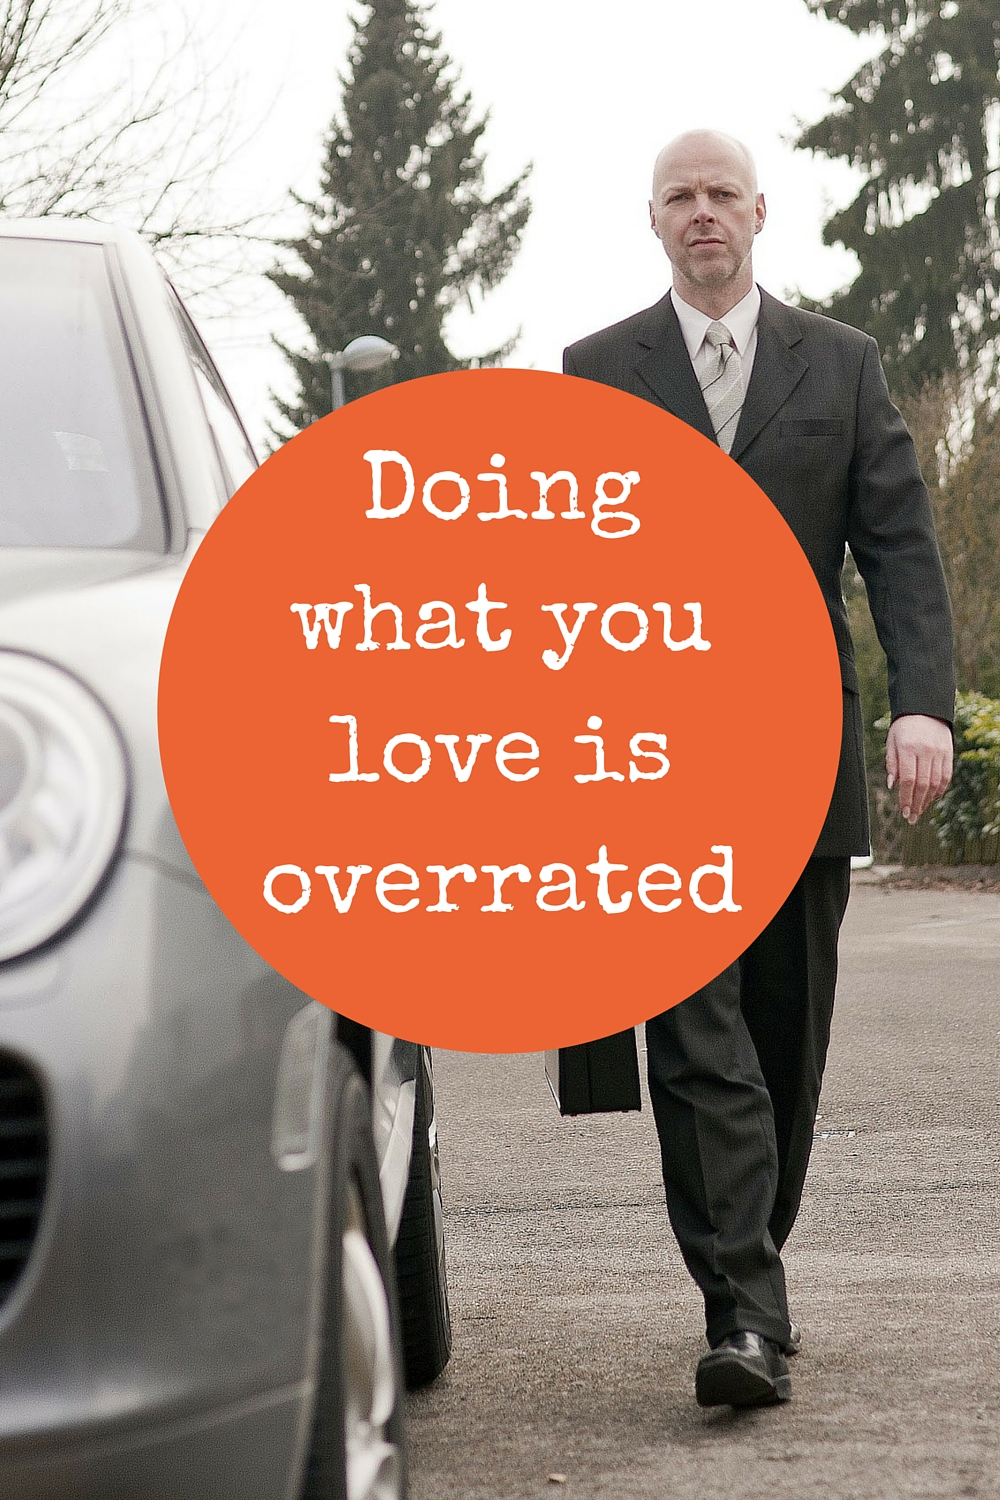 Doing what you love is overrated